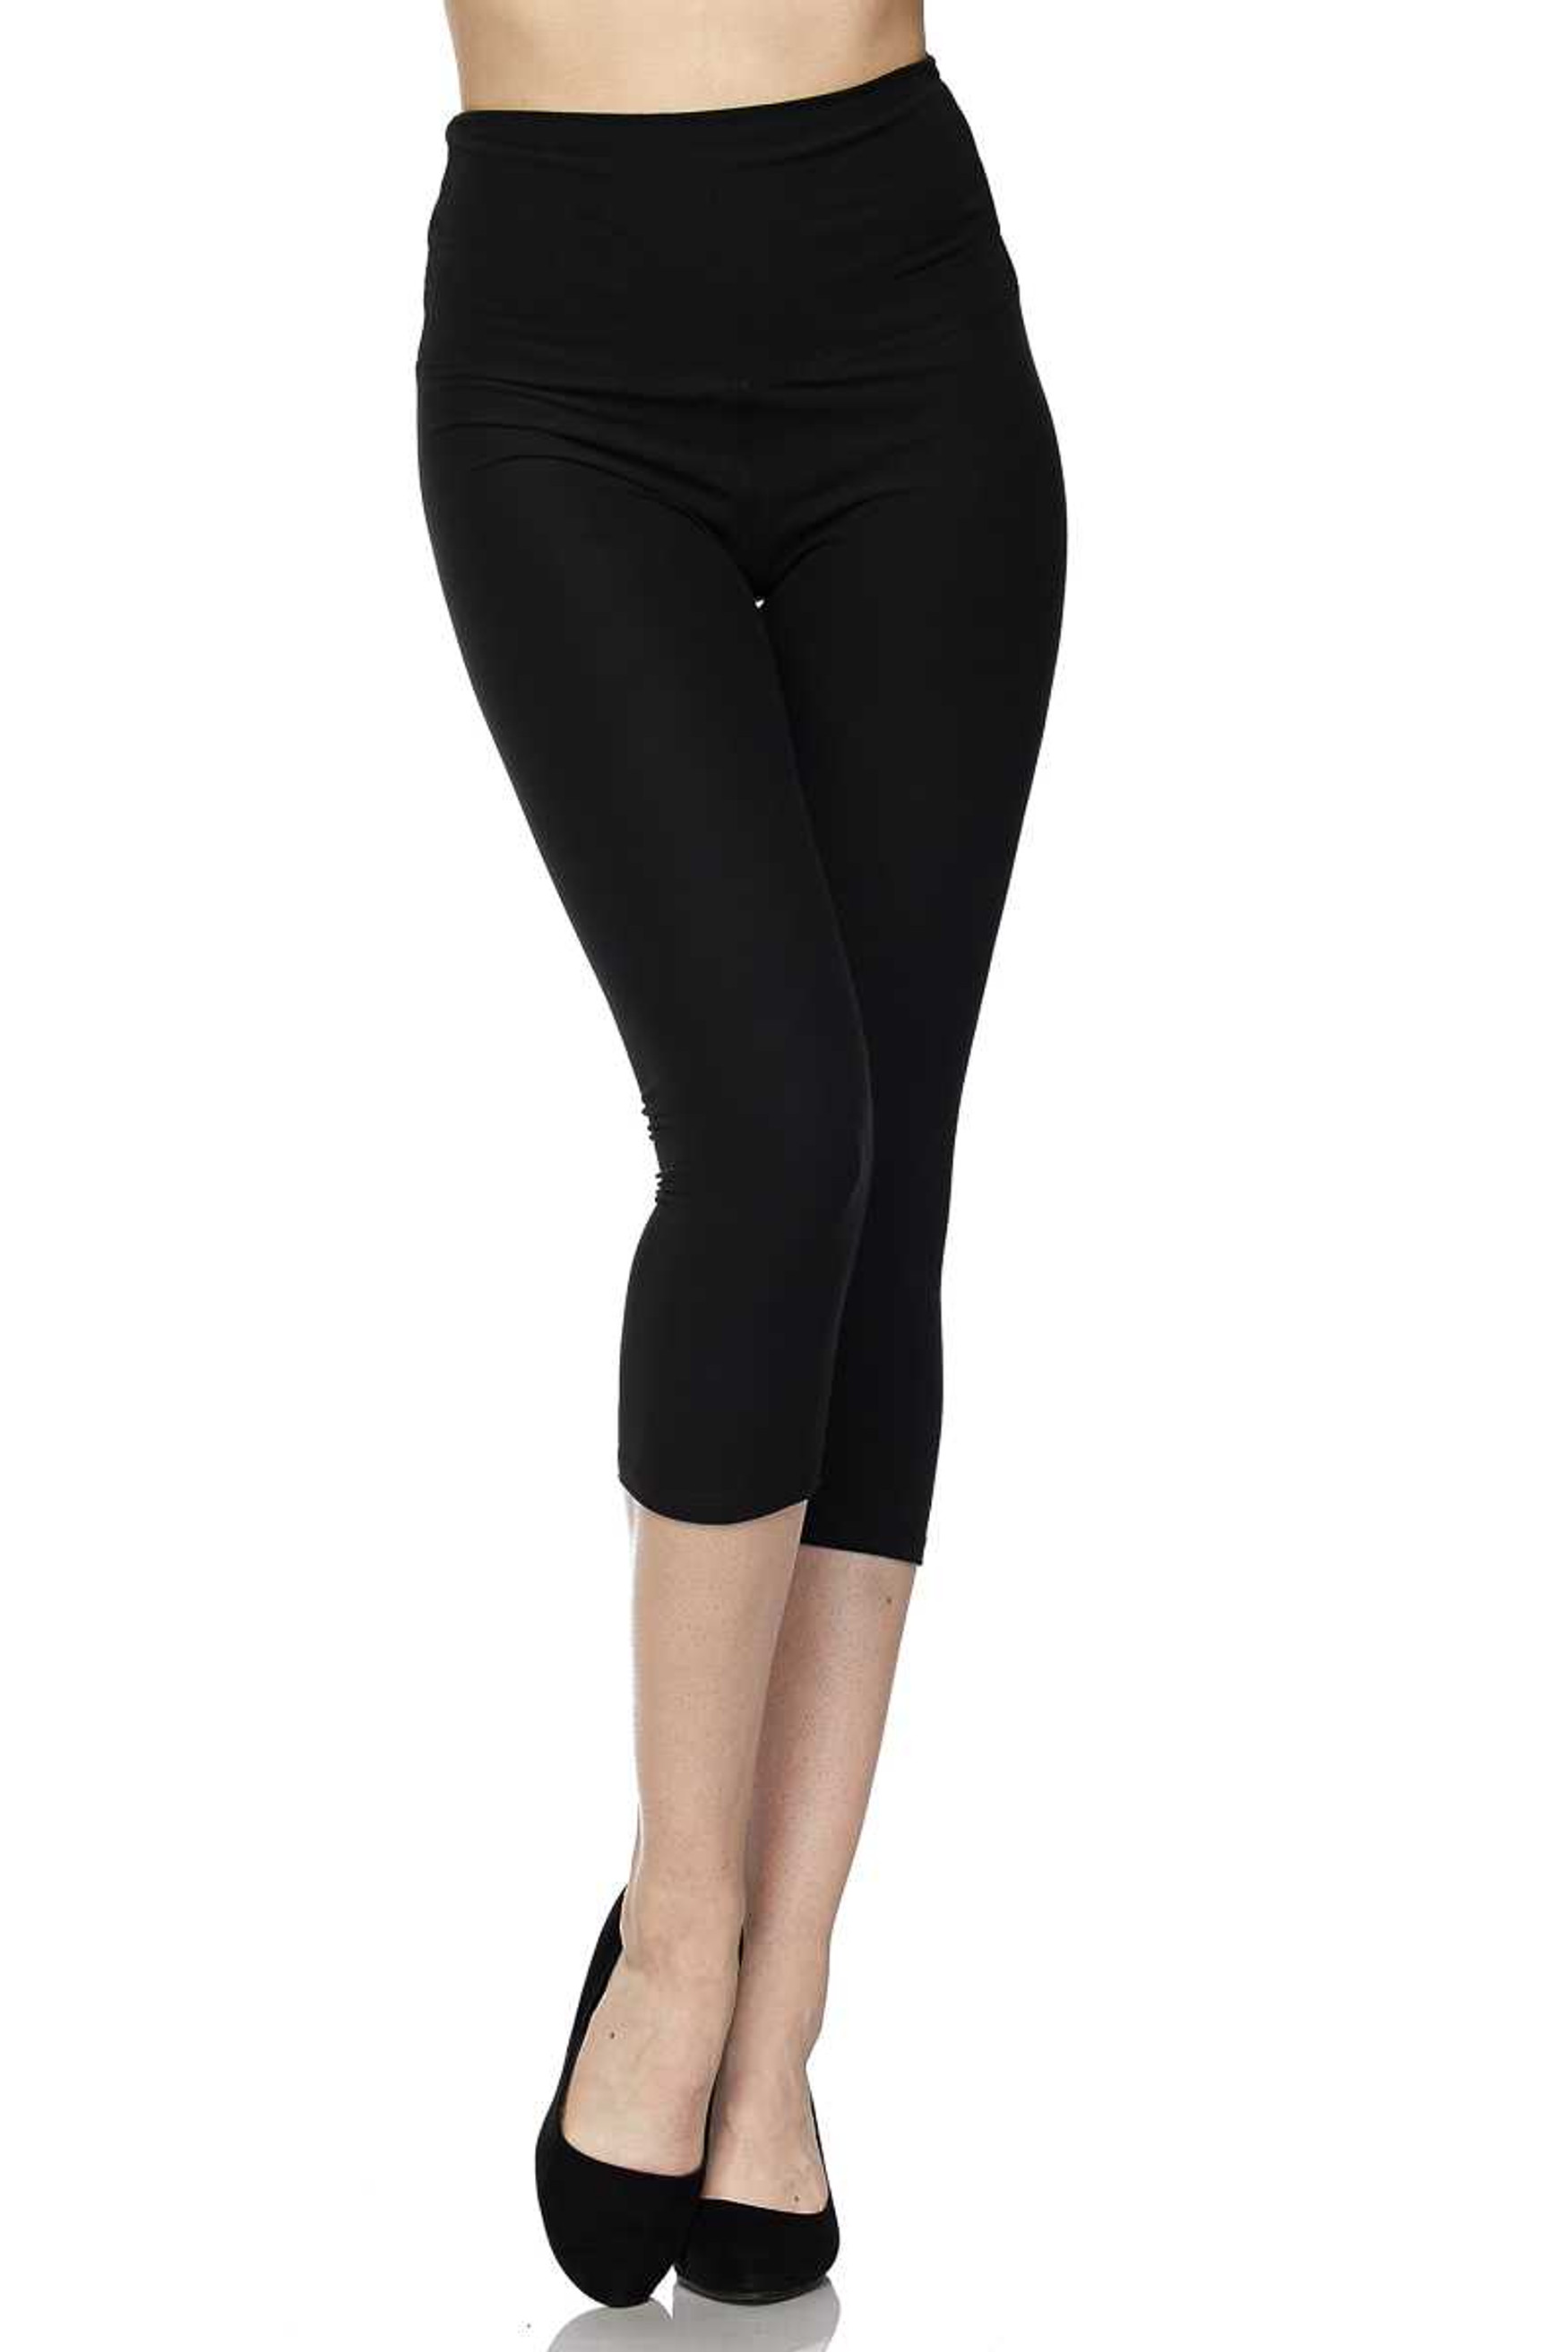 Brushed  Basic Solid High Waisted Extra Plus Size Capris - 5 Inch - 3X-5X  - New Mix